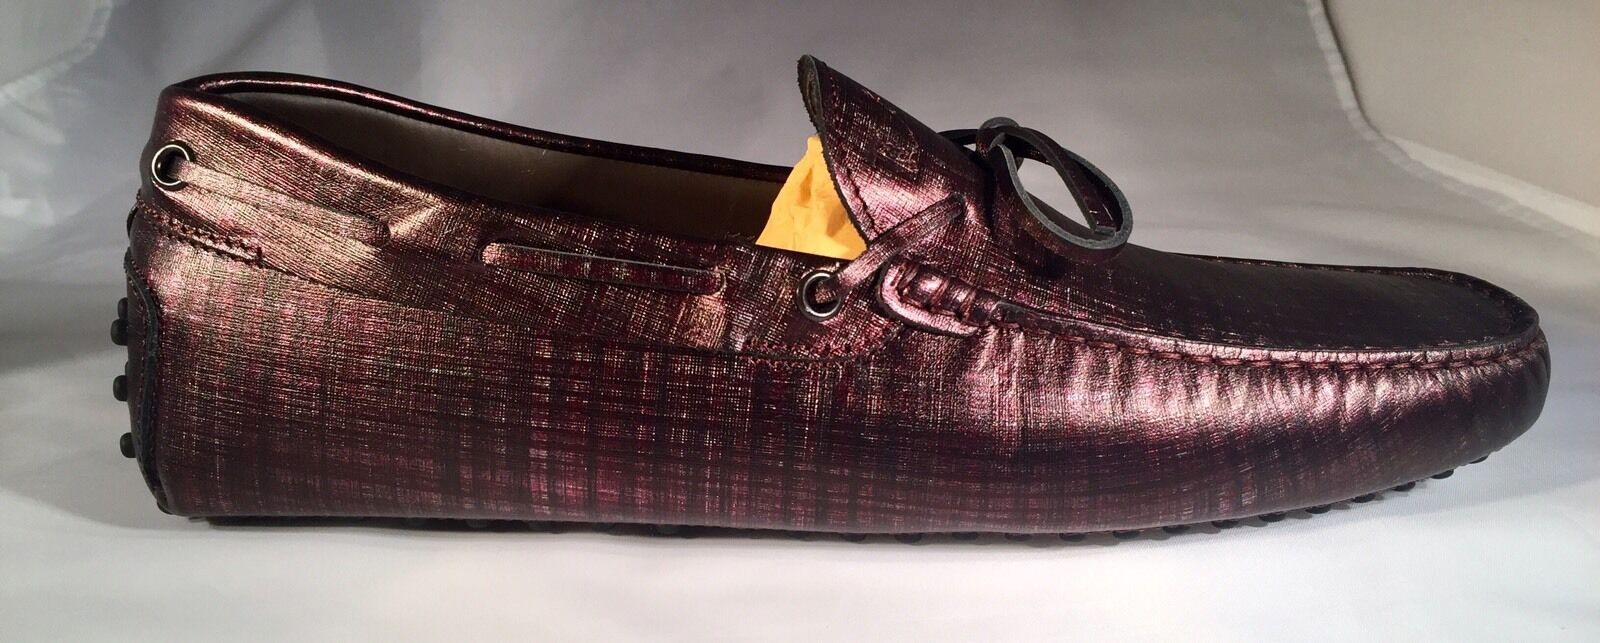 550 8.5  Tod's Purple Gommini Drivers Size US 8.5 550 Made In Italy 4f6f05